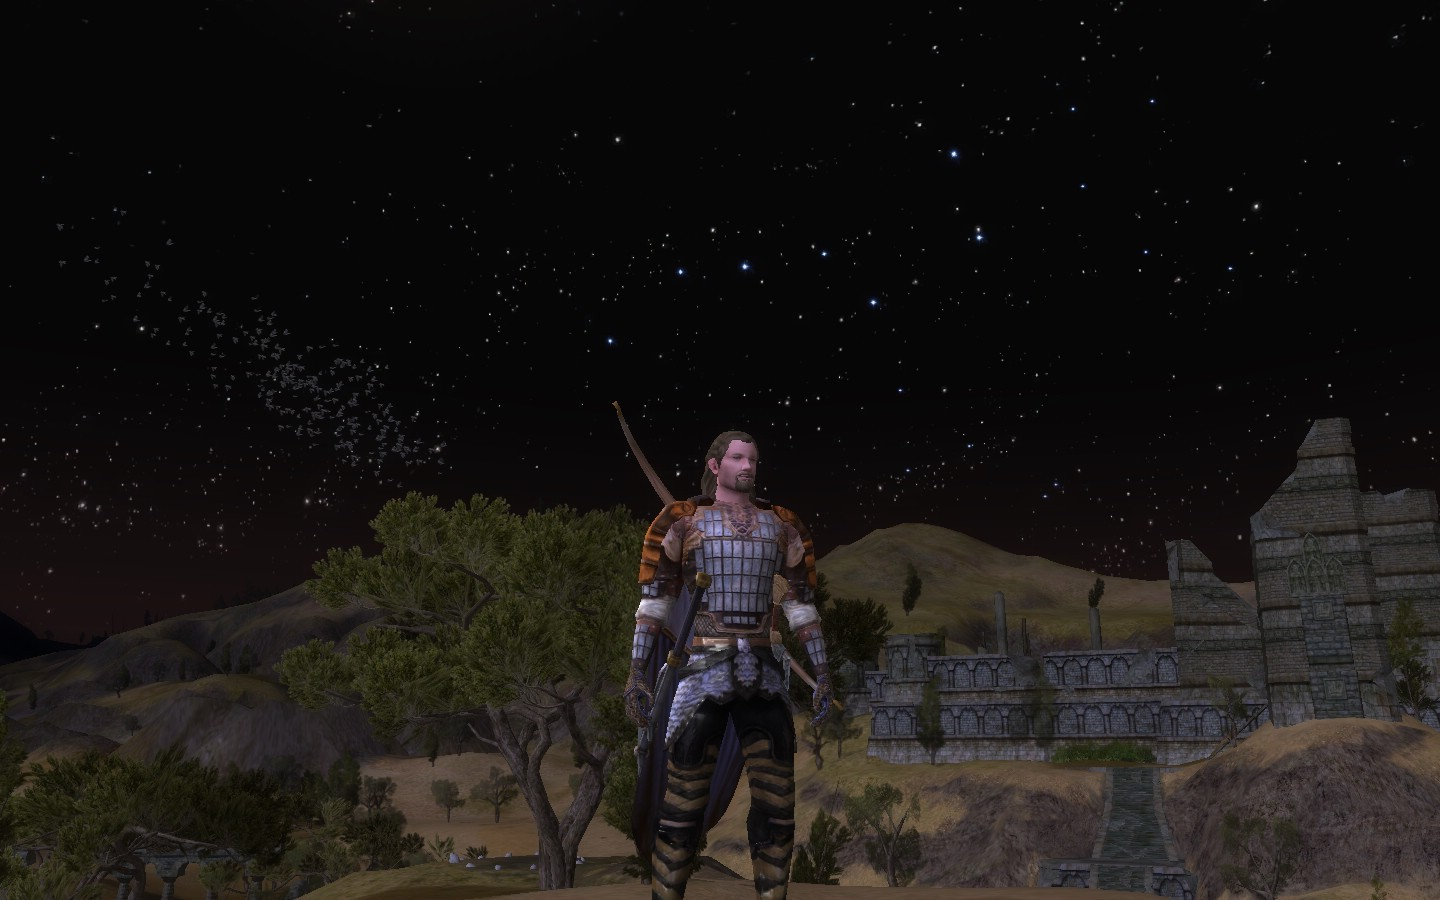 Lord of the Rings Online - Galadthryth of Rohan in the Lone Lands